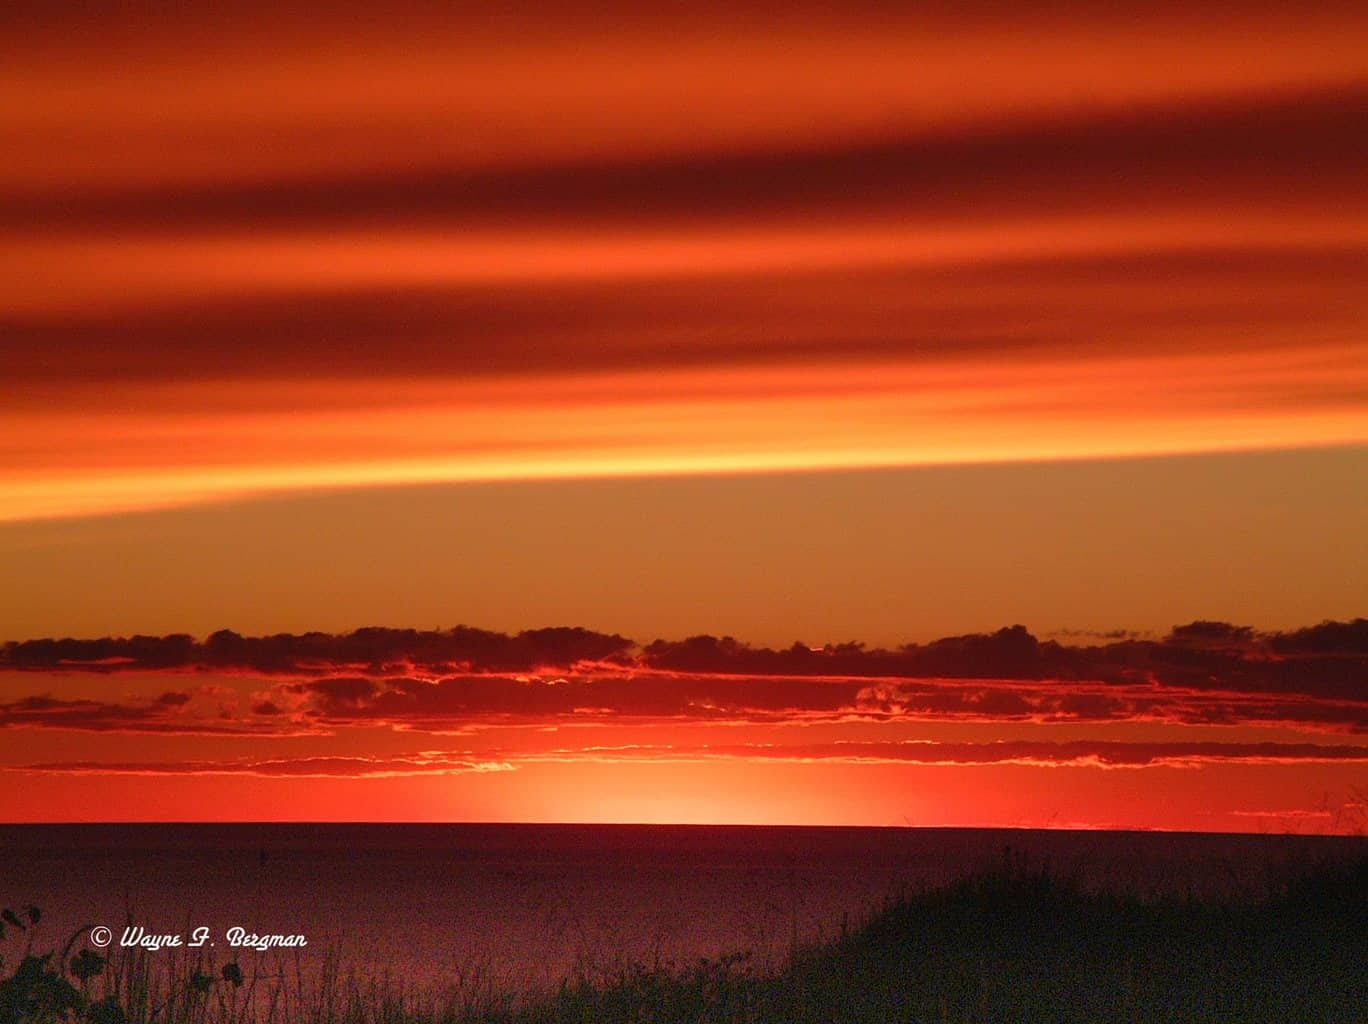 One of the most unusual sunsets over Lake Michigan that I have ever seen, this was during all the fires out west and in Canada that made for a spectacular red Photo, this picture is as is untouched.